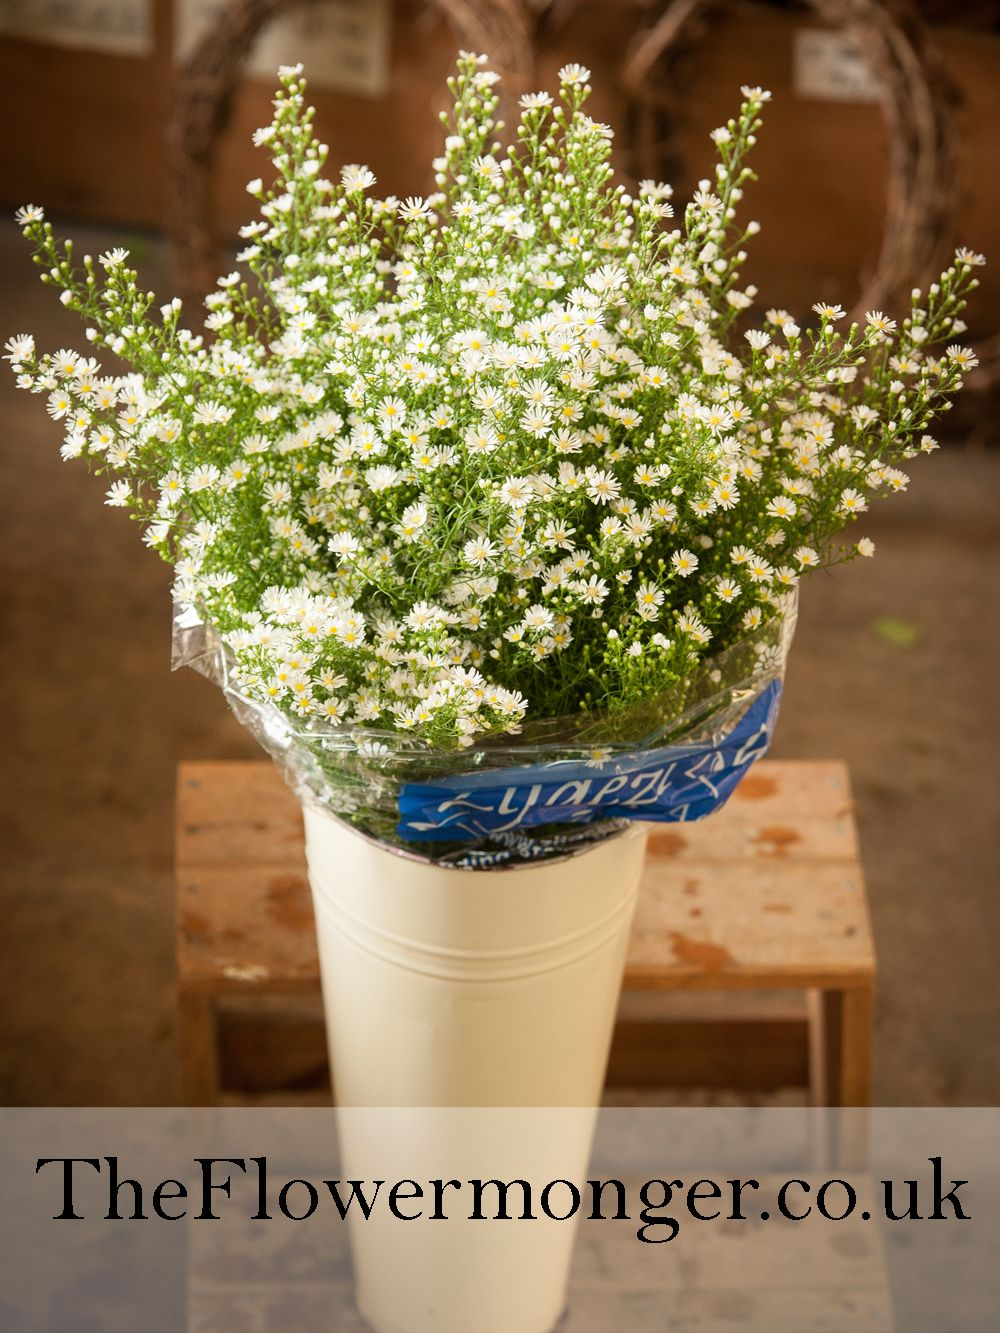 White september flower available in bunches of 5 stems from the white september flower available in bunches of 5 stems from the flowermonger the wholesale floral home delivery service picture shows is 25 stems mightylinksfo